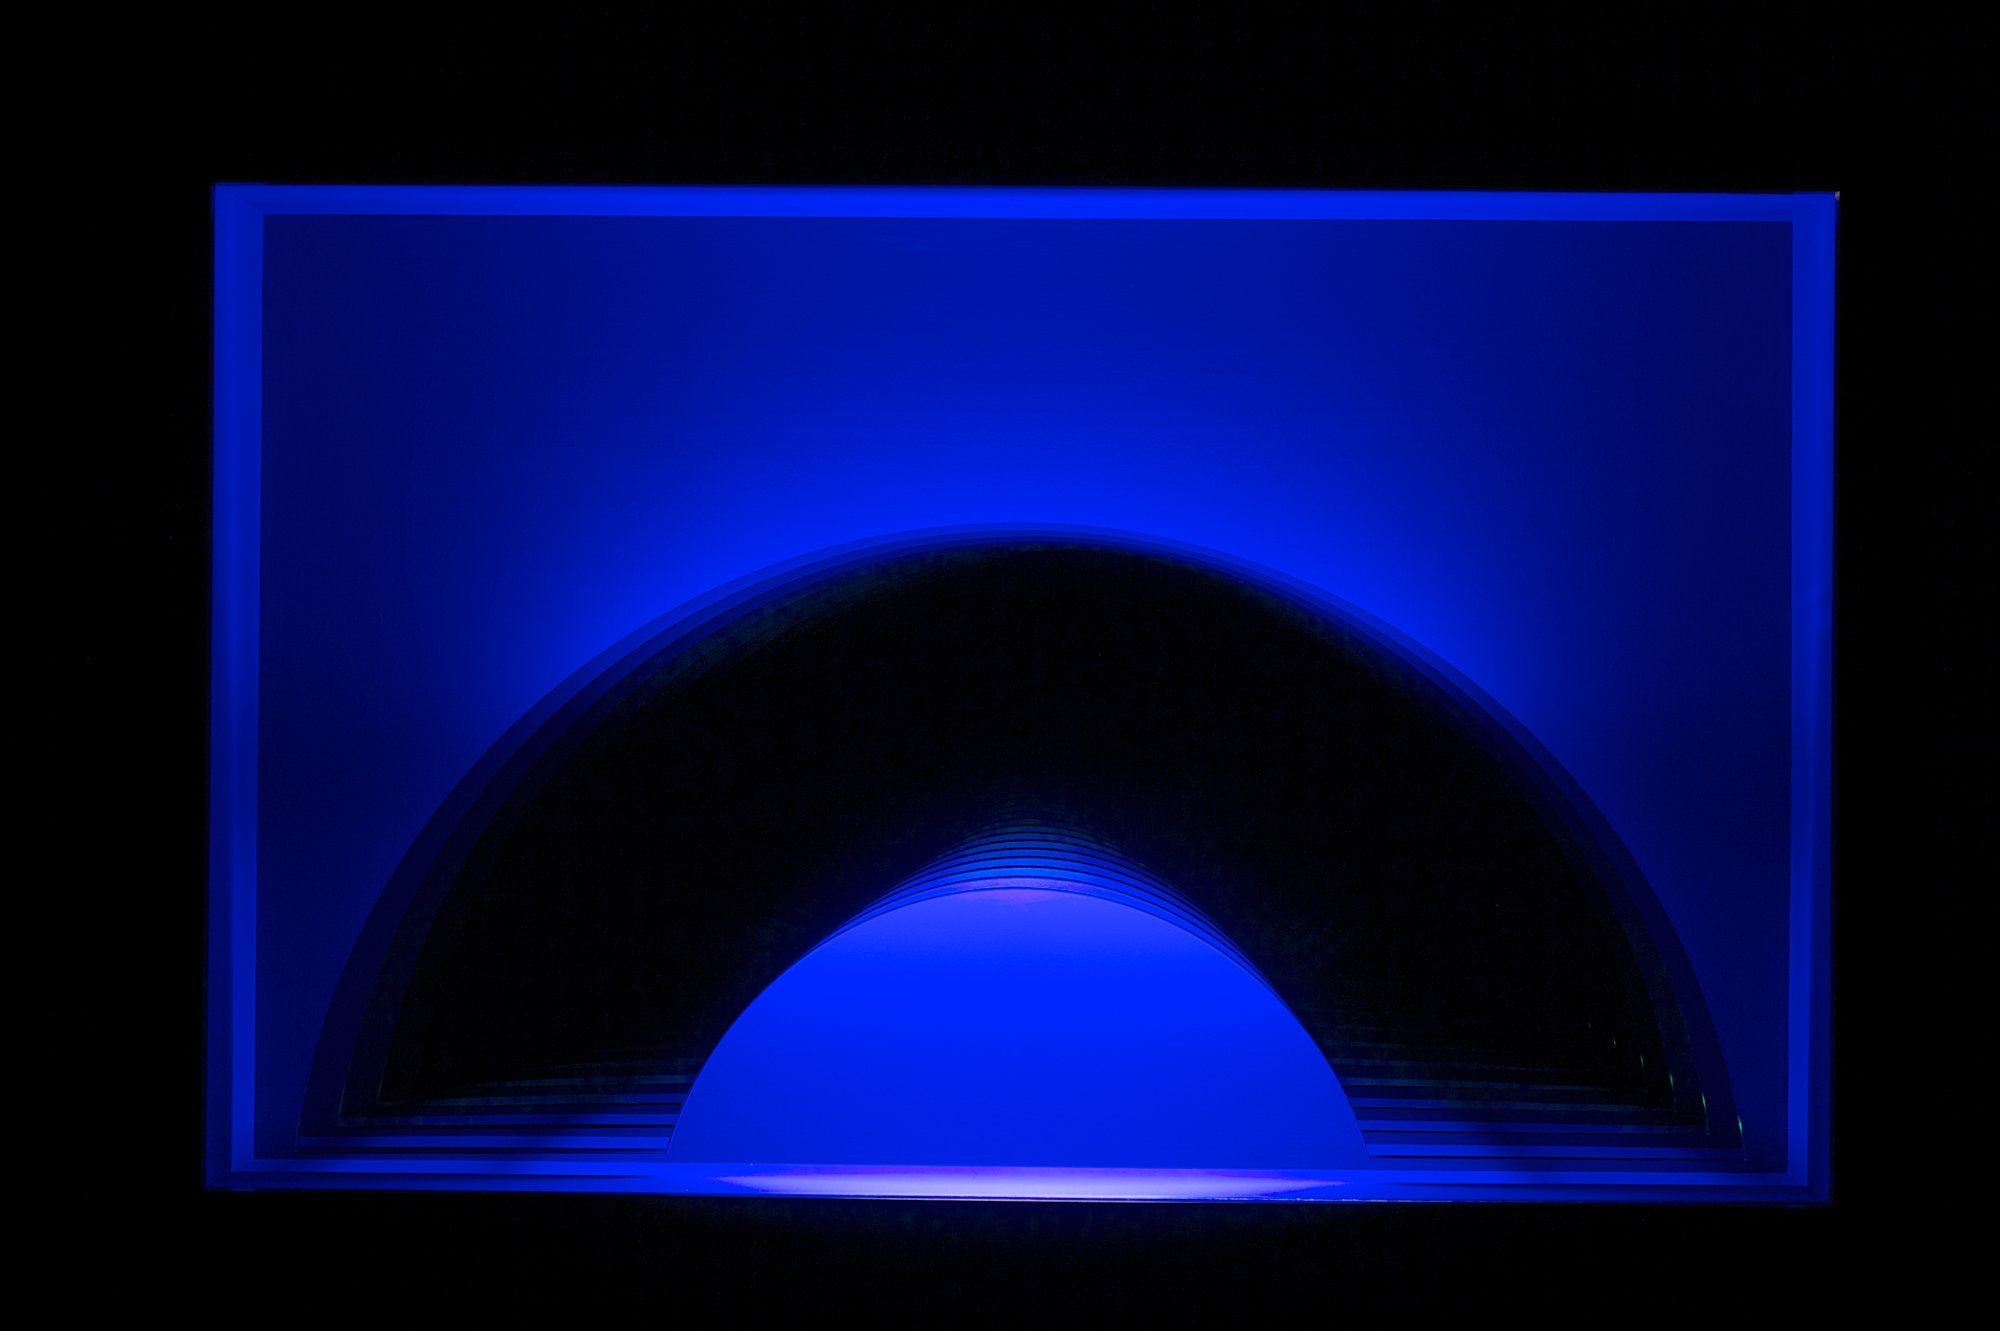 A Spatial Blue Arc